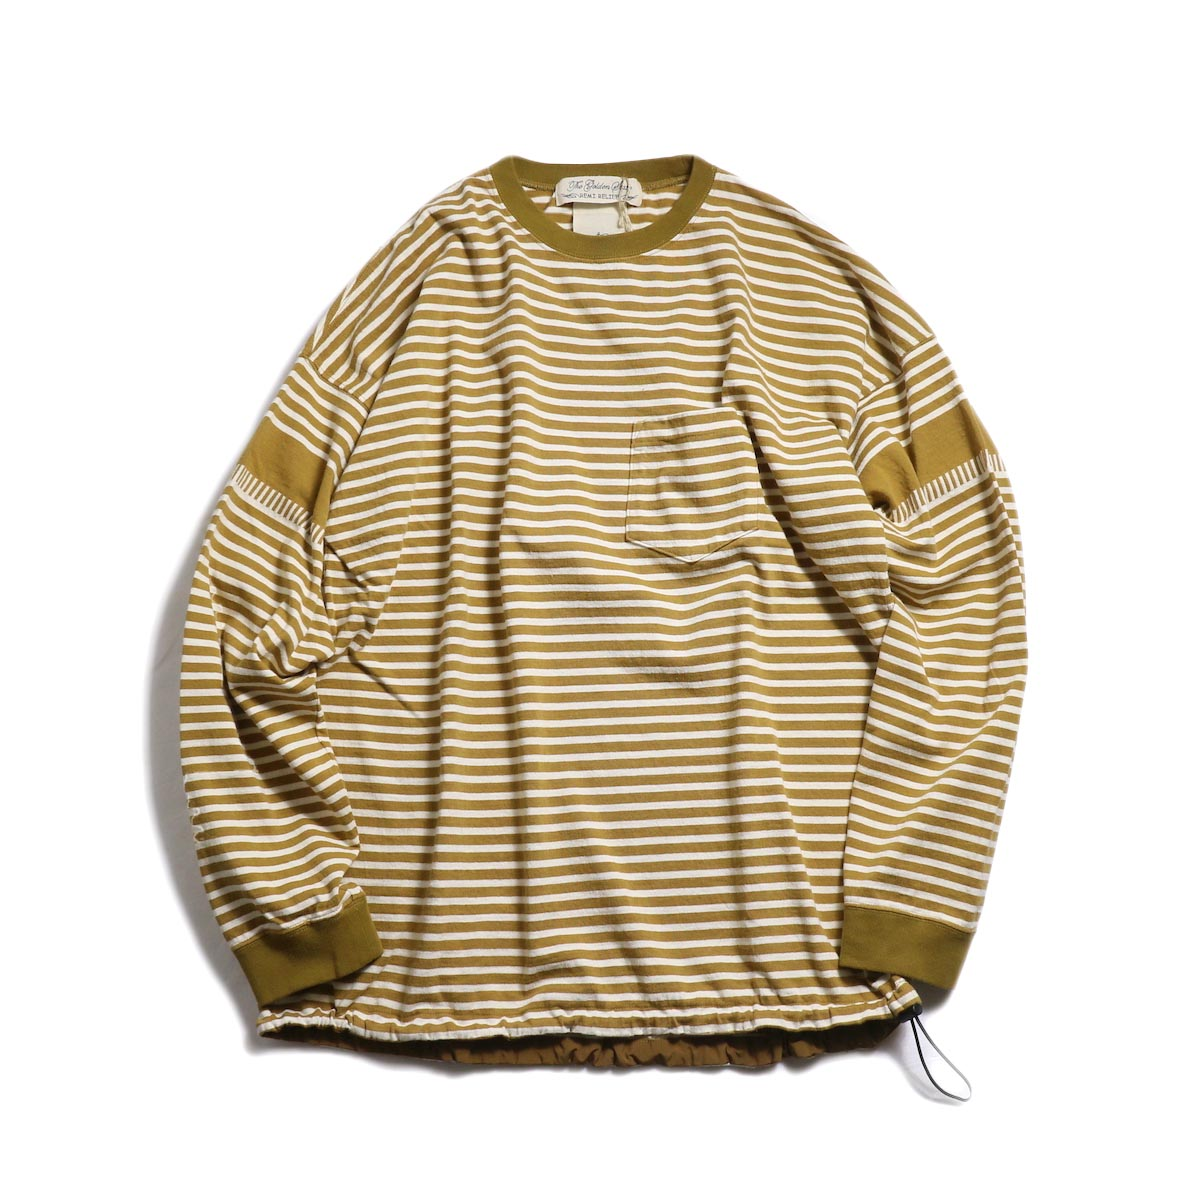 REMI RELIEF / 切替ボーダーロンTee (RN18249092) -OFF×MUSTARD